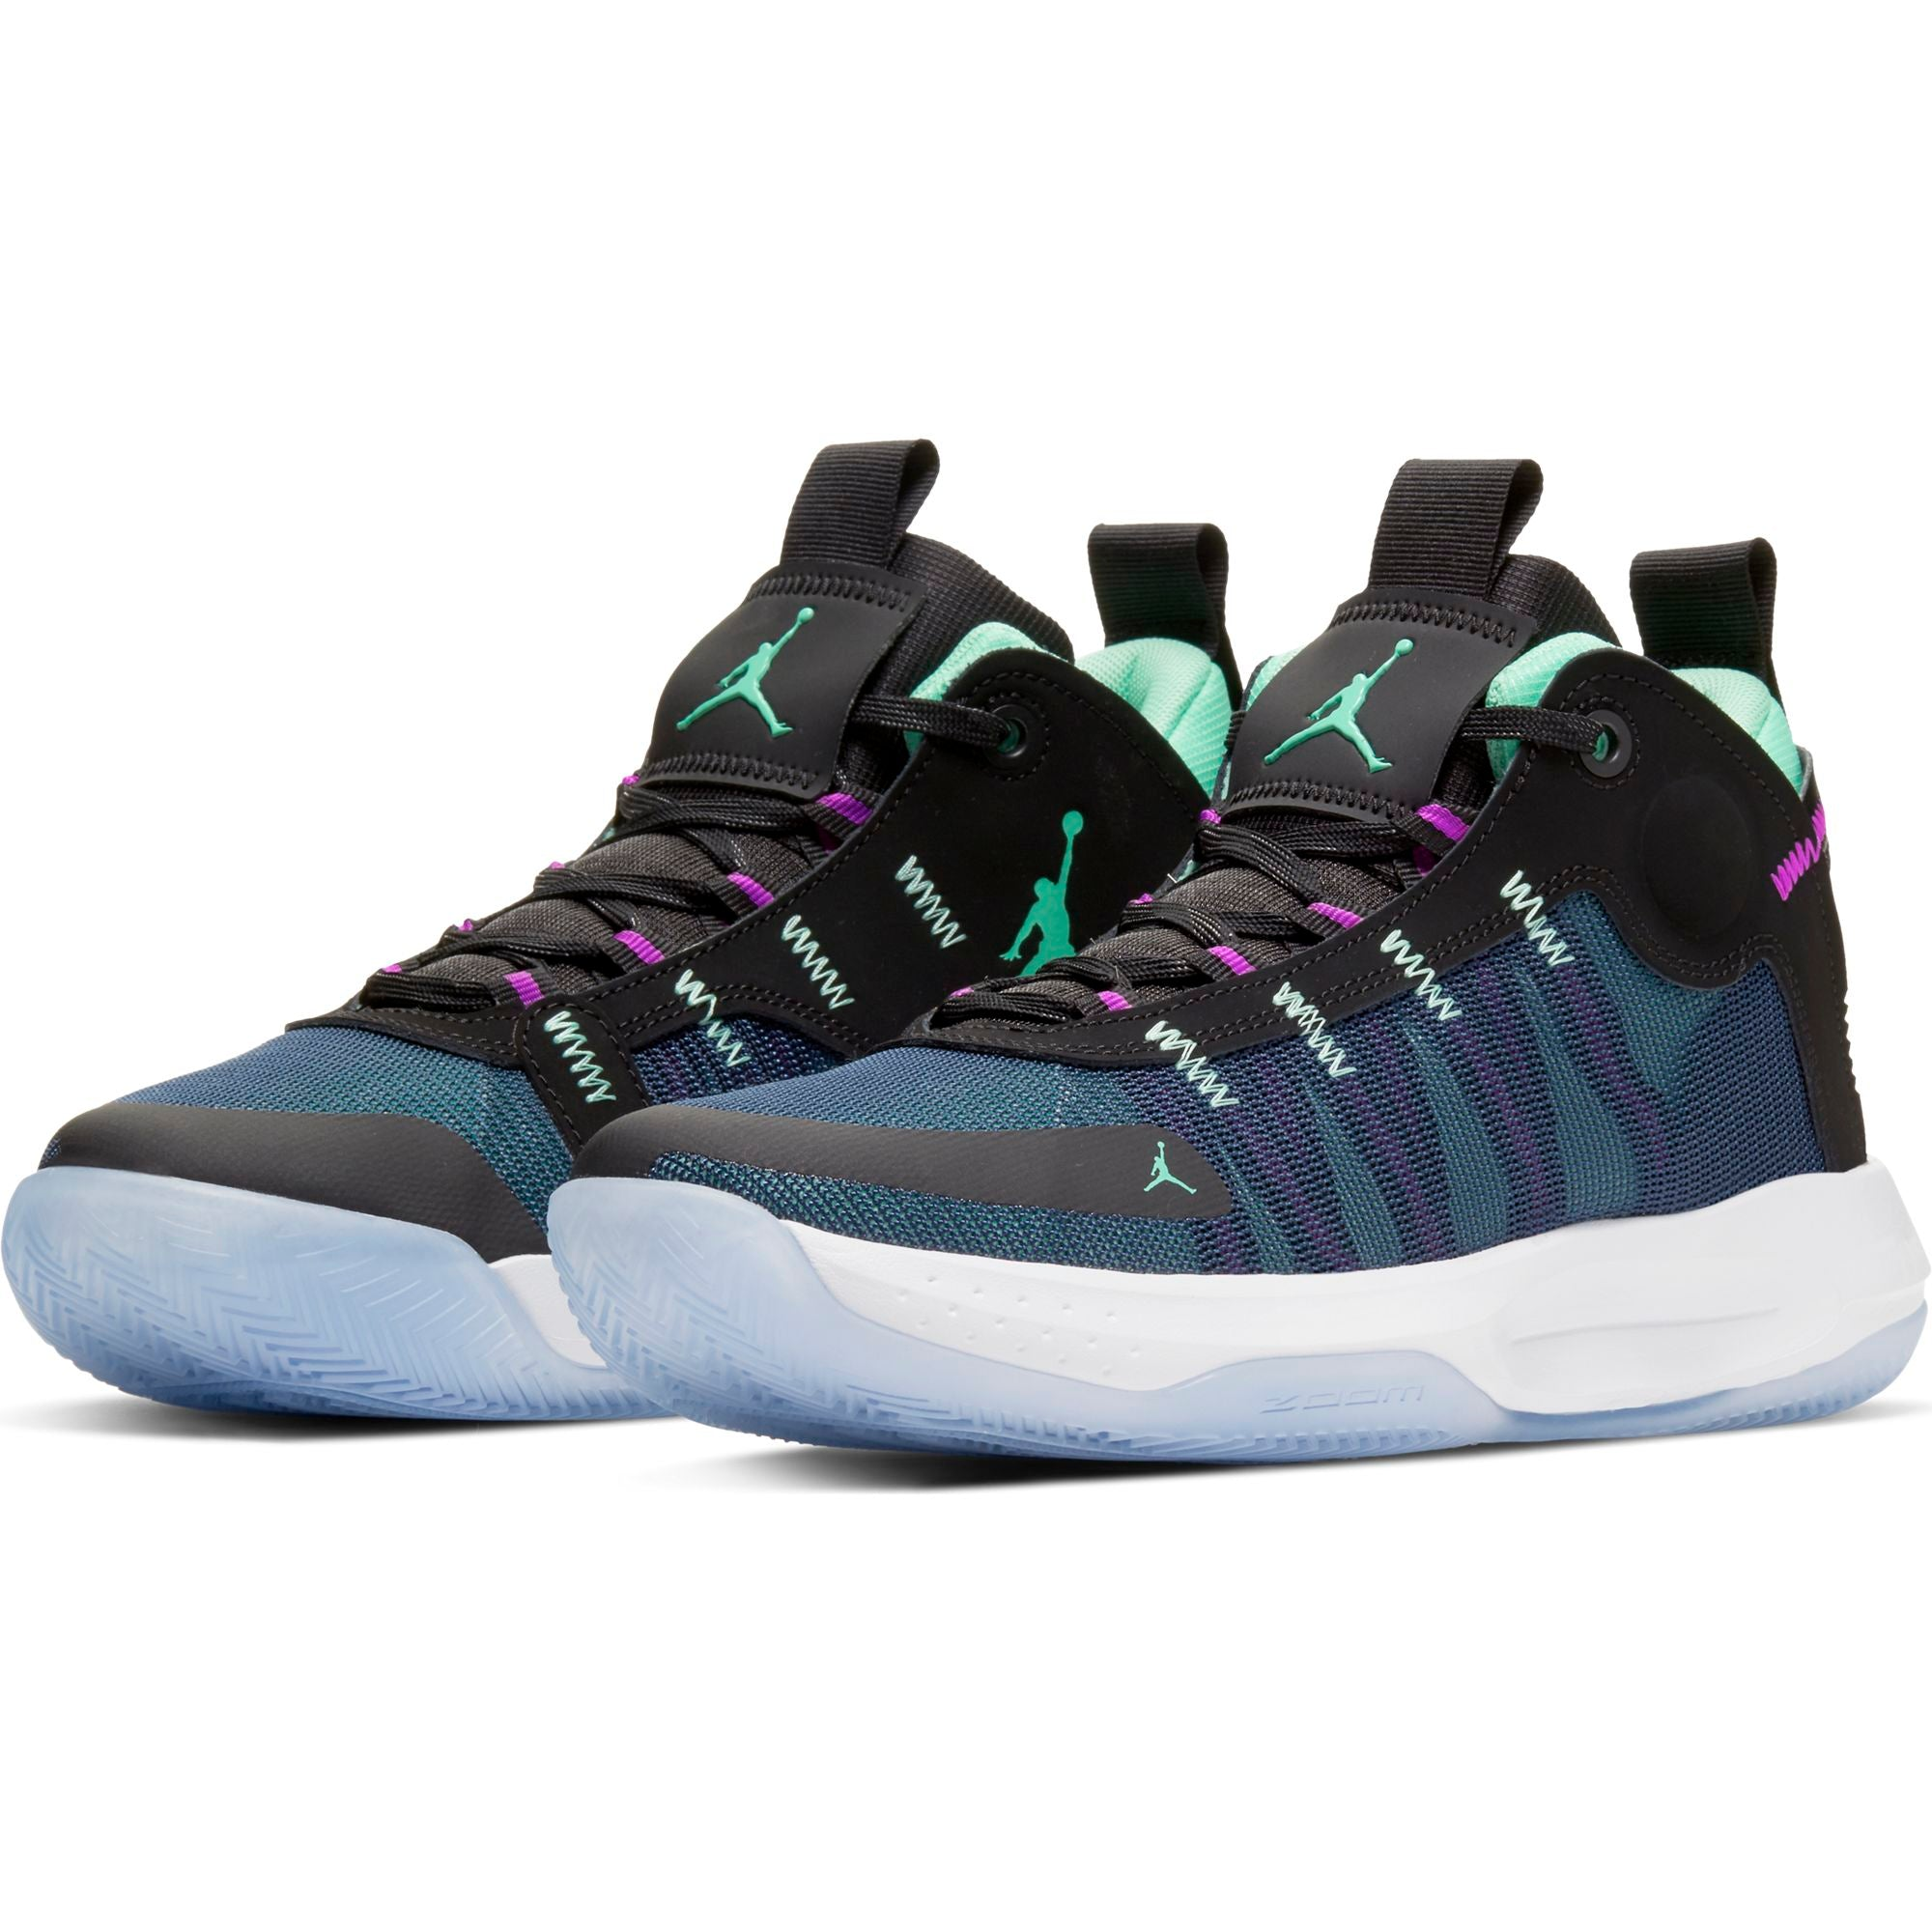 Nike Jordan Jumpman 2020 Basketball Boot/shoe - Black/Green Glow/Blue Void/Hyper Violet